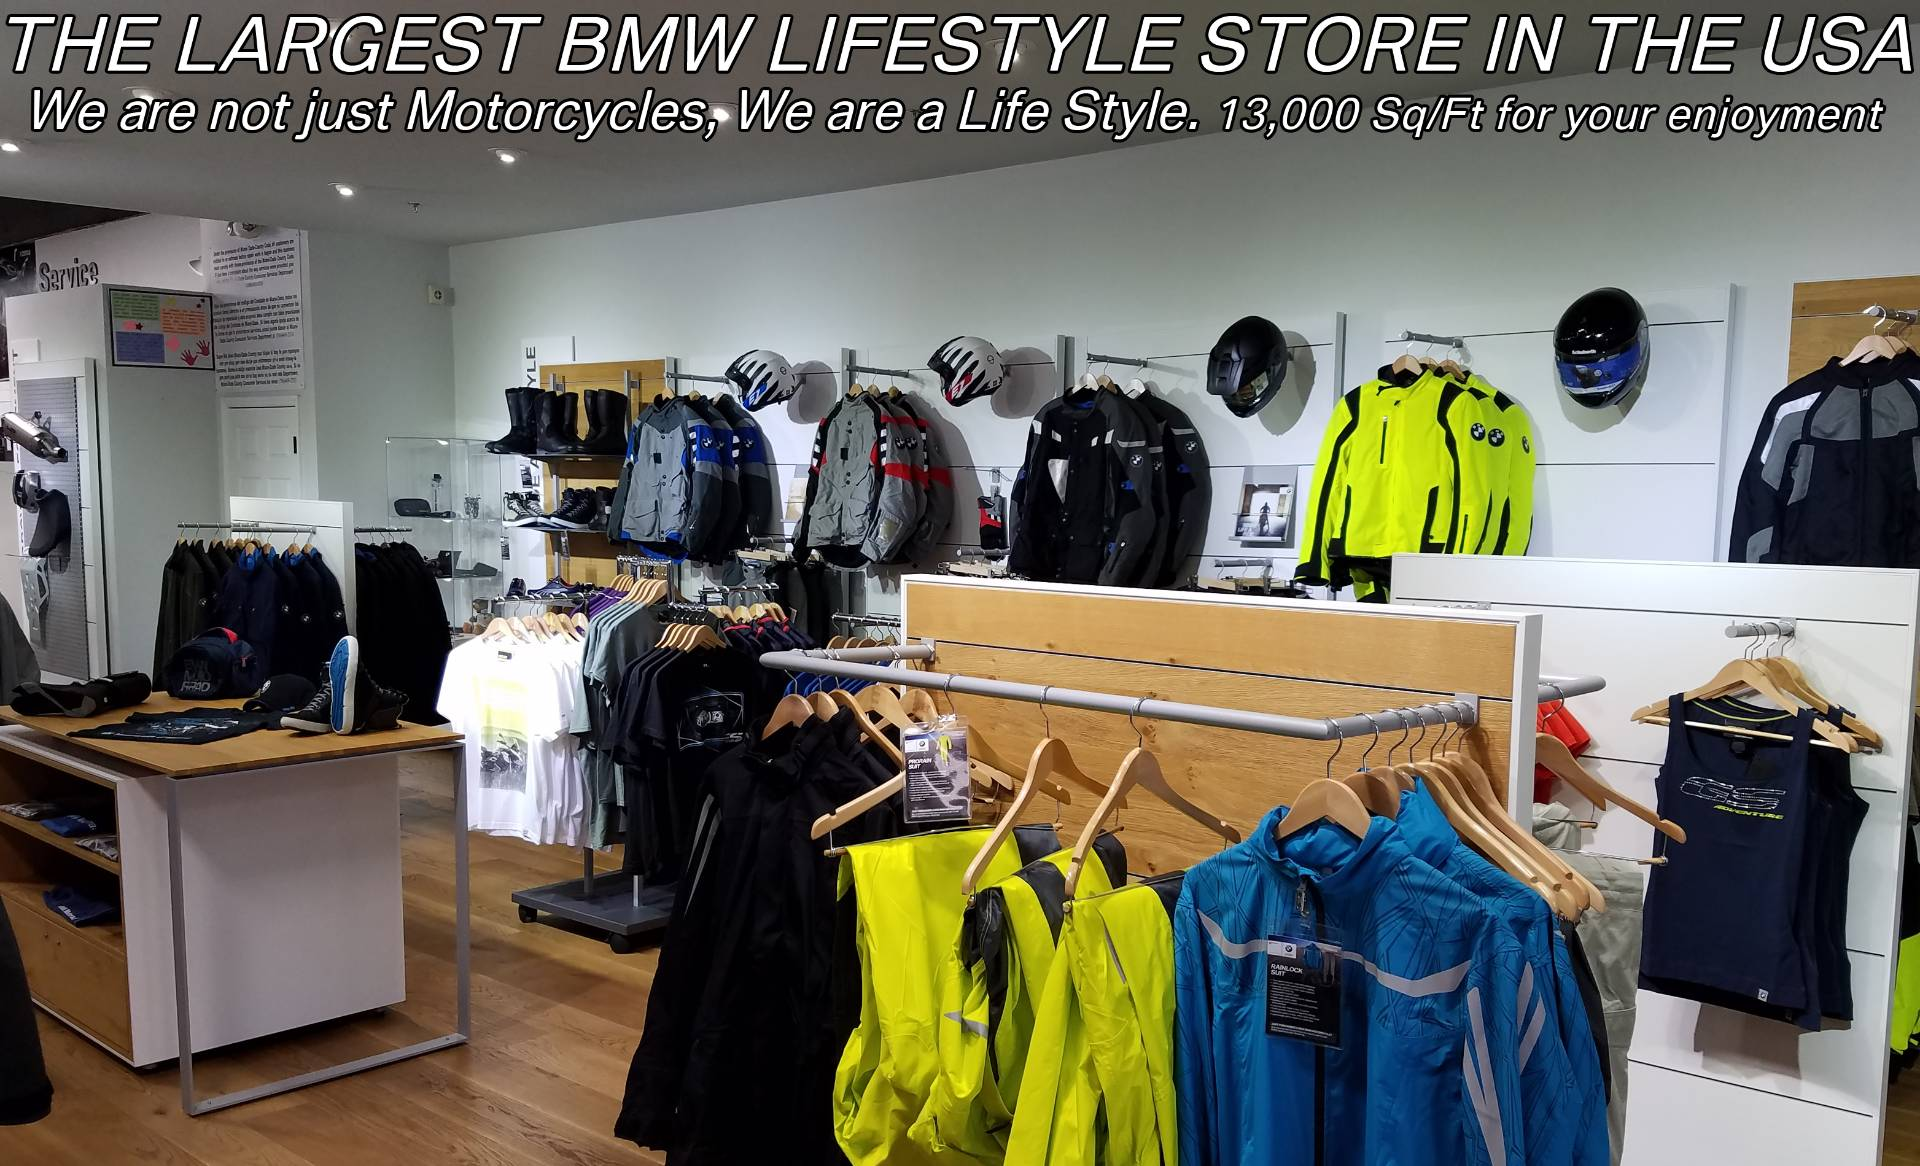 New 2019 BMW R 1250 GS for sale, New BMW R 1250GS, BMW R1250GS for sale, 1250GS, R1250GS, BMW Motorcycles of Miami, Motorcycles of Miami. Motorcycles Miami - Photo 67